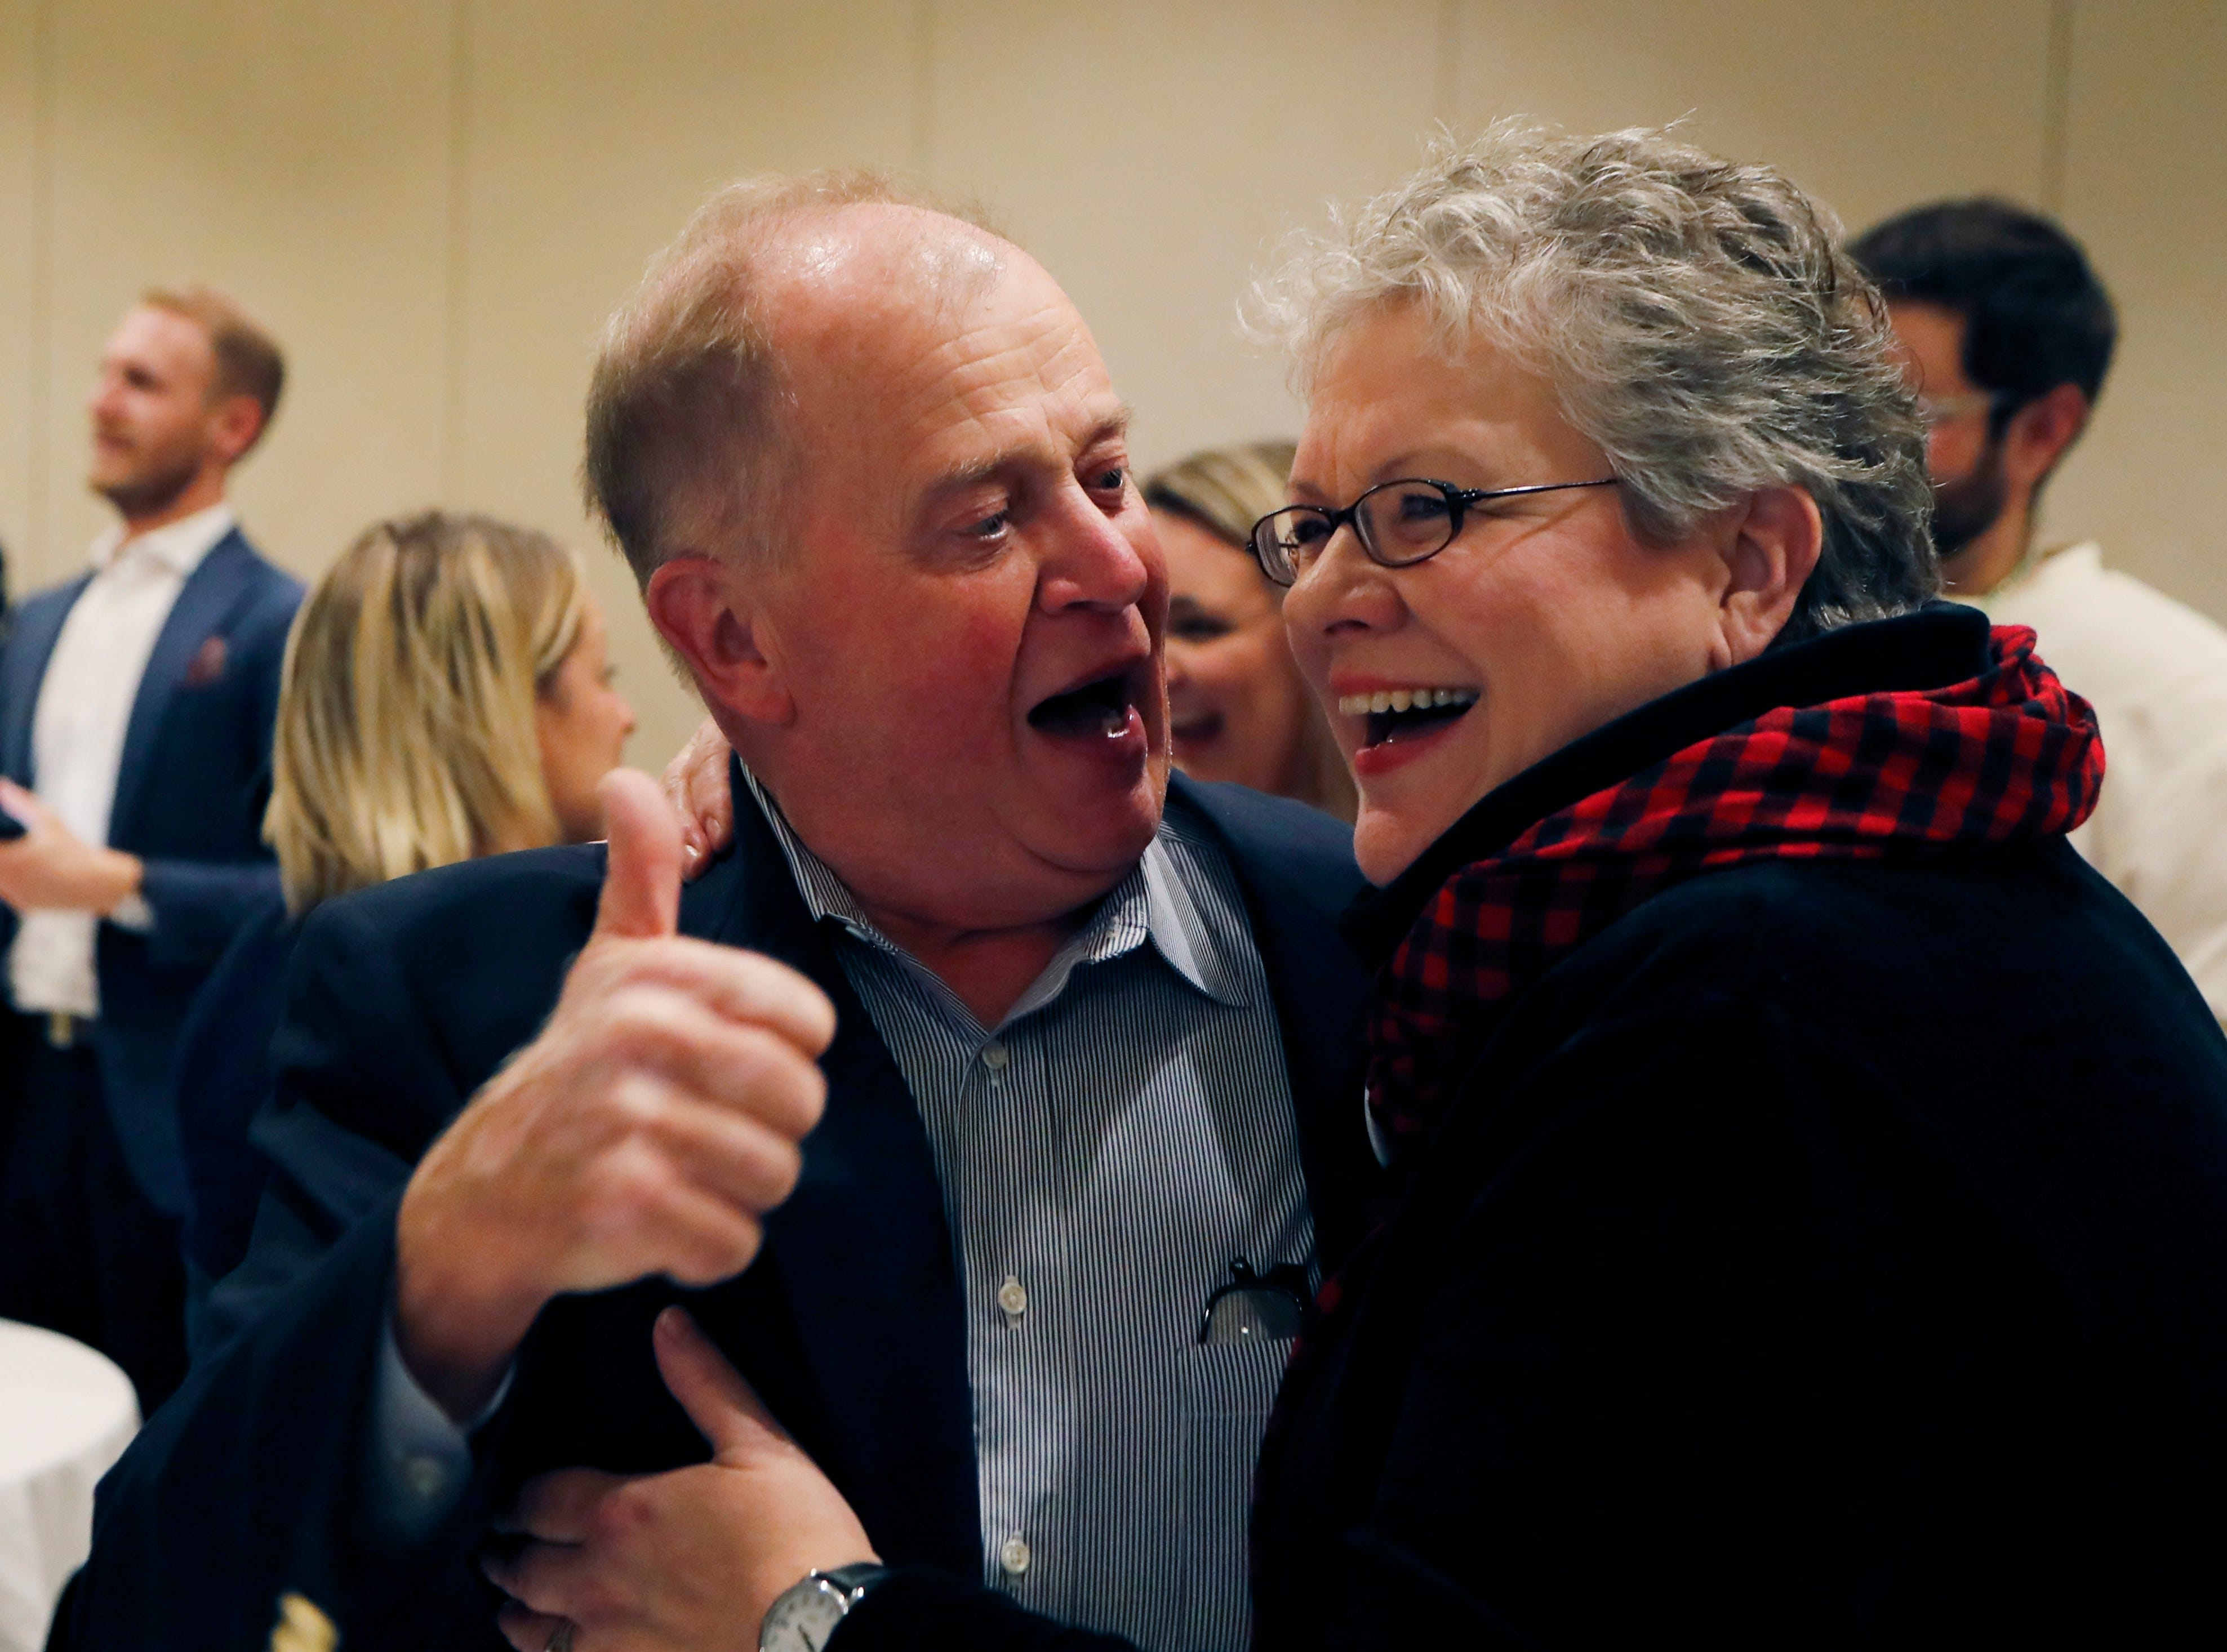 Jim and Maria Stevens react after learning their daughter Haley Stevens was the projected winner for Michigan's 11th Congressional District seat at an election night party in Birmingham.